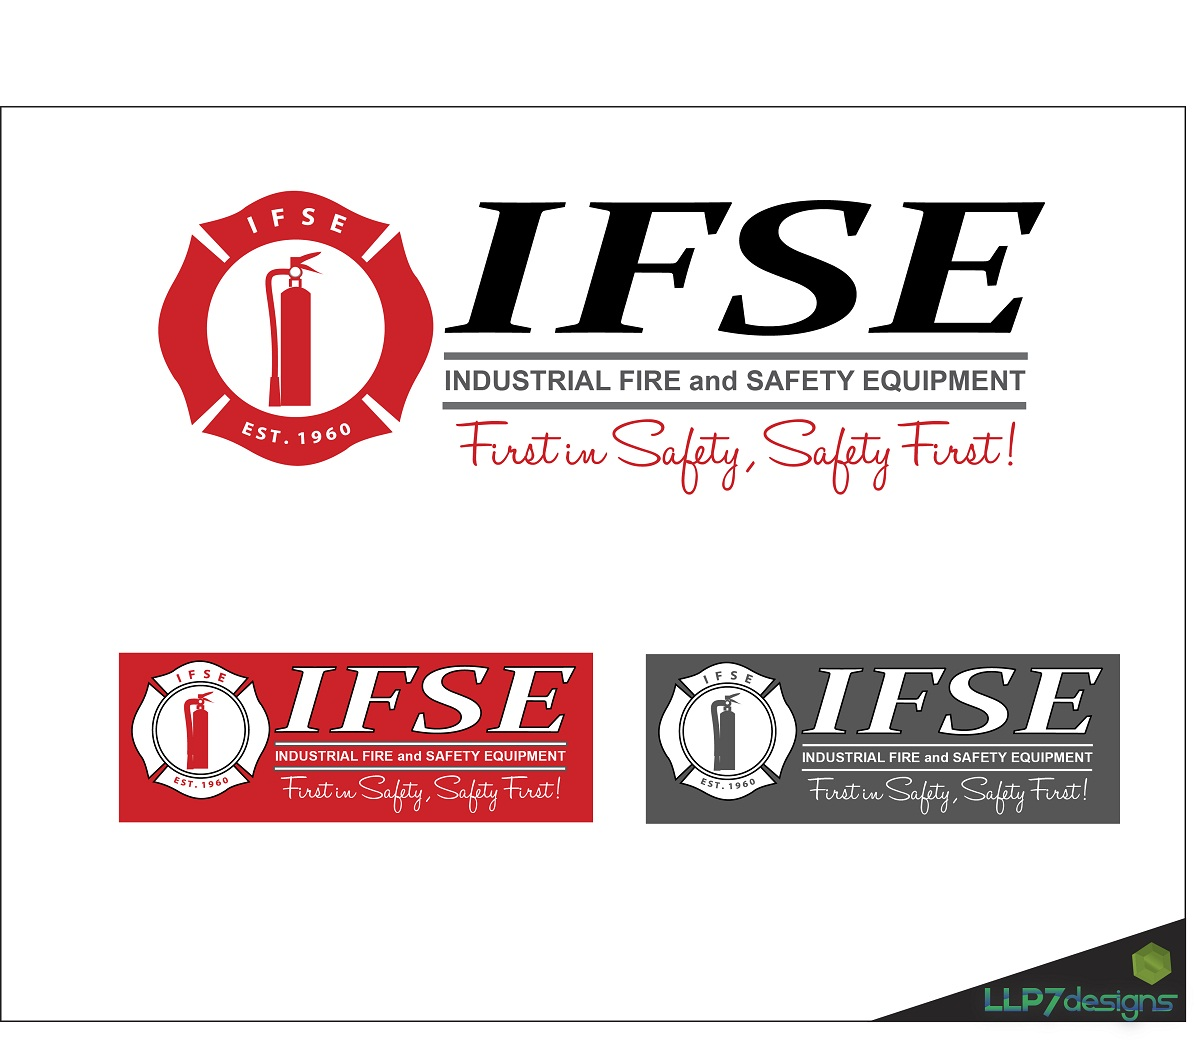 Logo Design by LLP7 - Entry No. 24 in the Logo Design Contest New Logo Design for Industrial Fire and Safety Equipment, Inc..